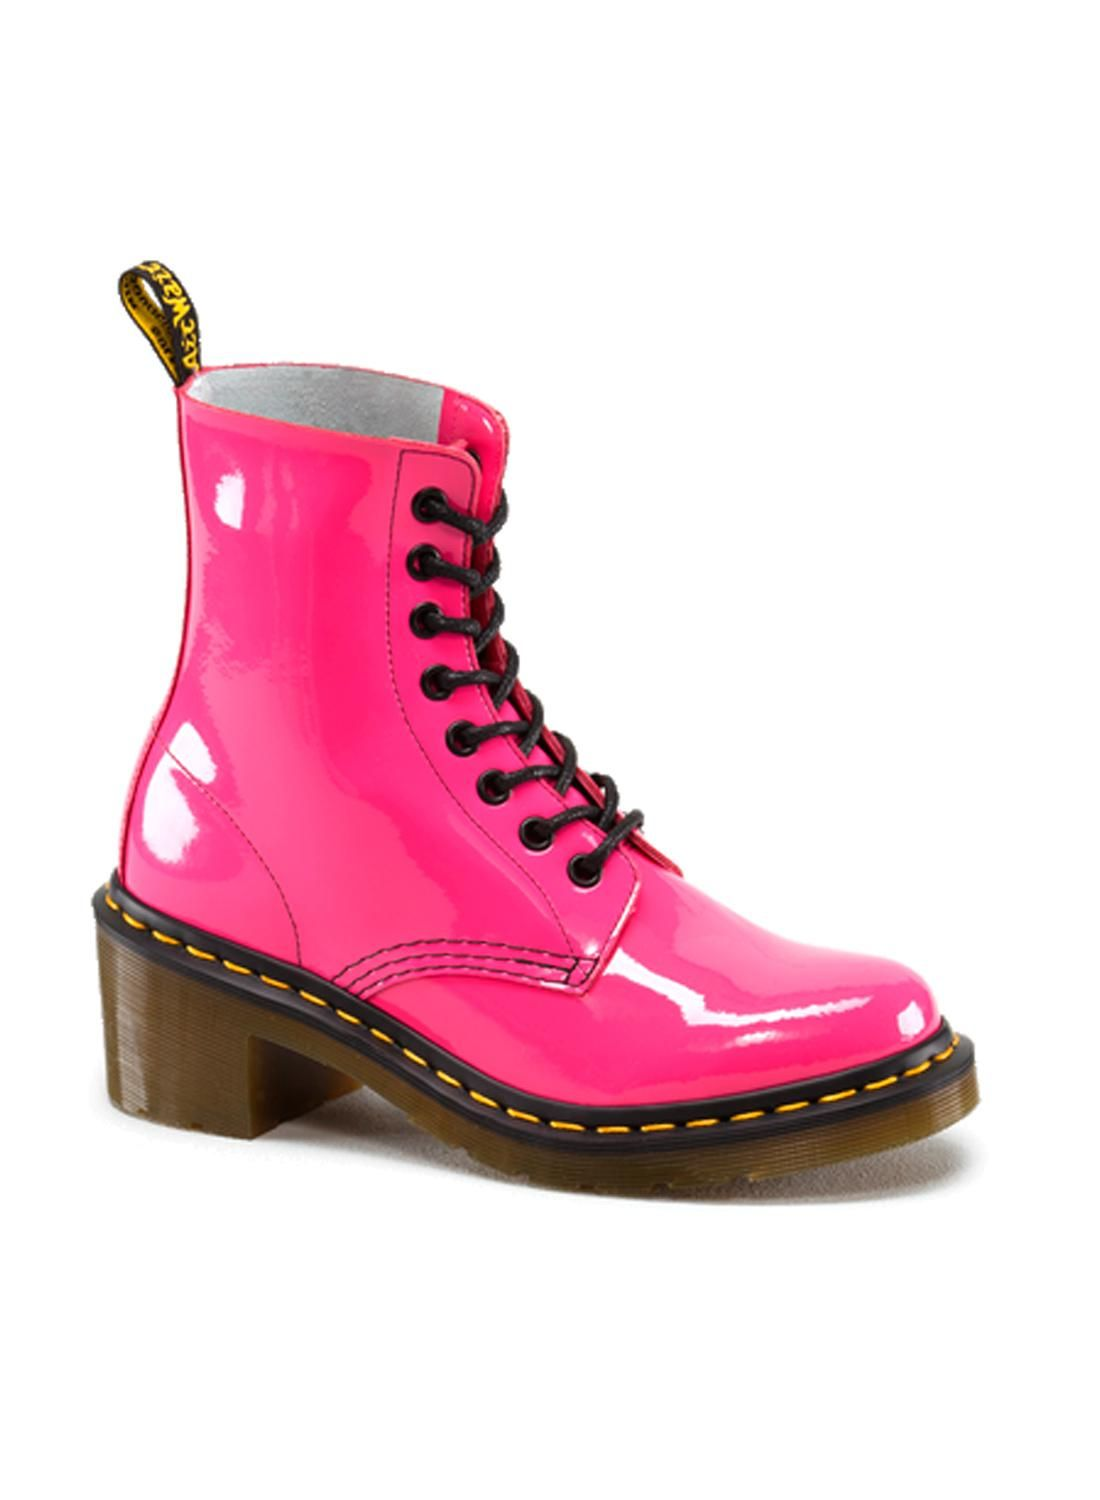 Bota Clemency - Dr. Martens #ClubJ #Online #Shopping #Peru #JockeyPlaza #Fashion #Icon